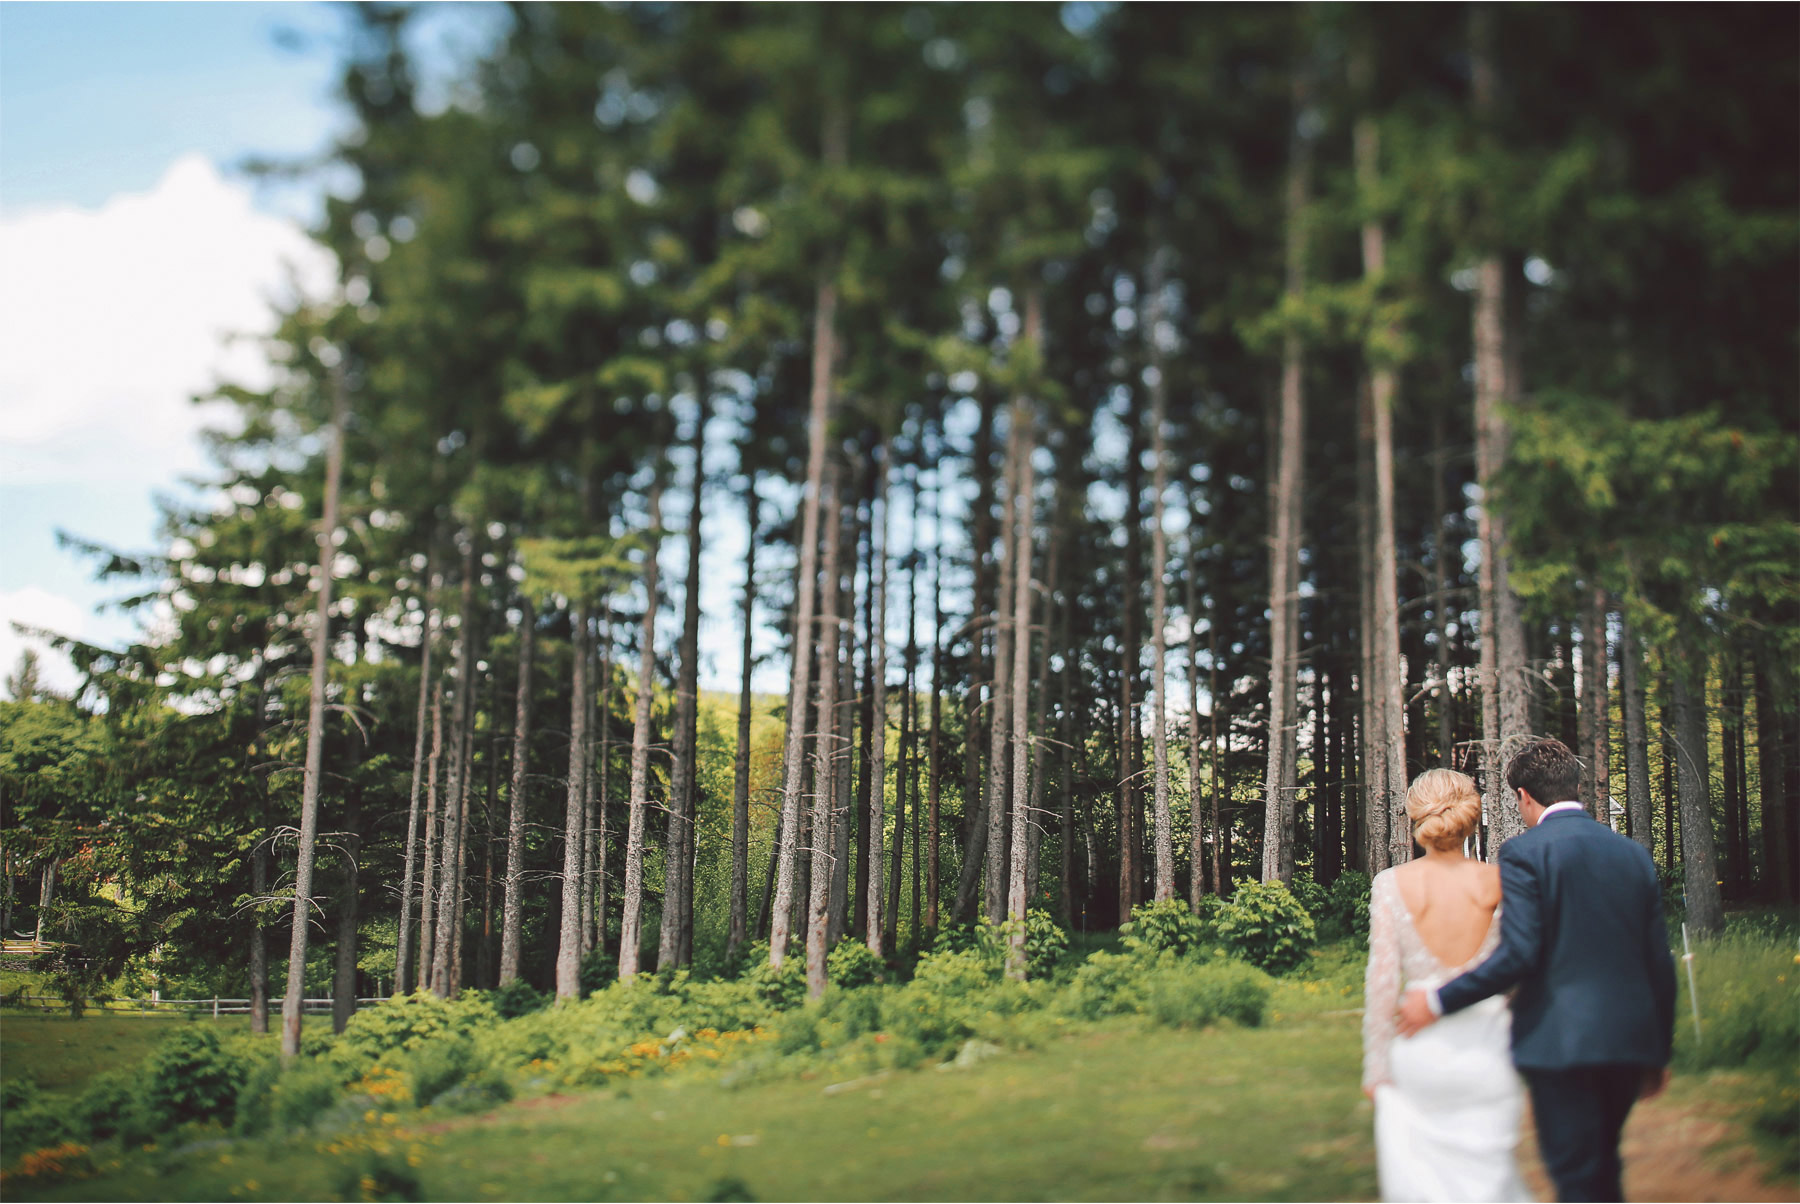 14-Stowe-Vermont-Wedding-Photography-by-Vick-Photography-Edson-Hill-Forest-Woods-Mackenzie-and-Jim.jpg